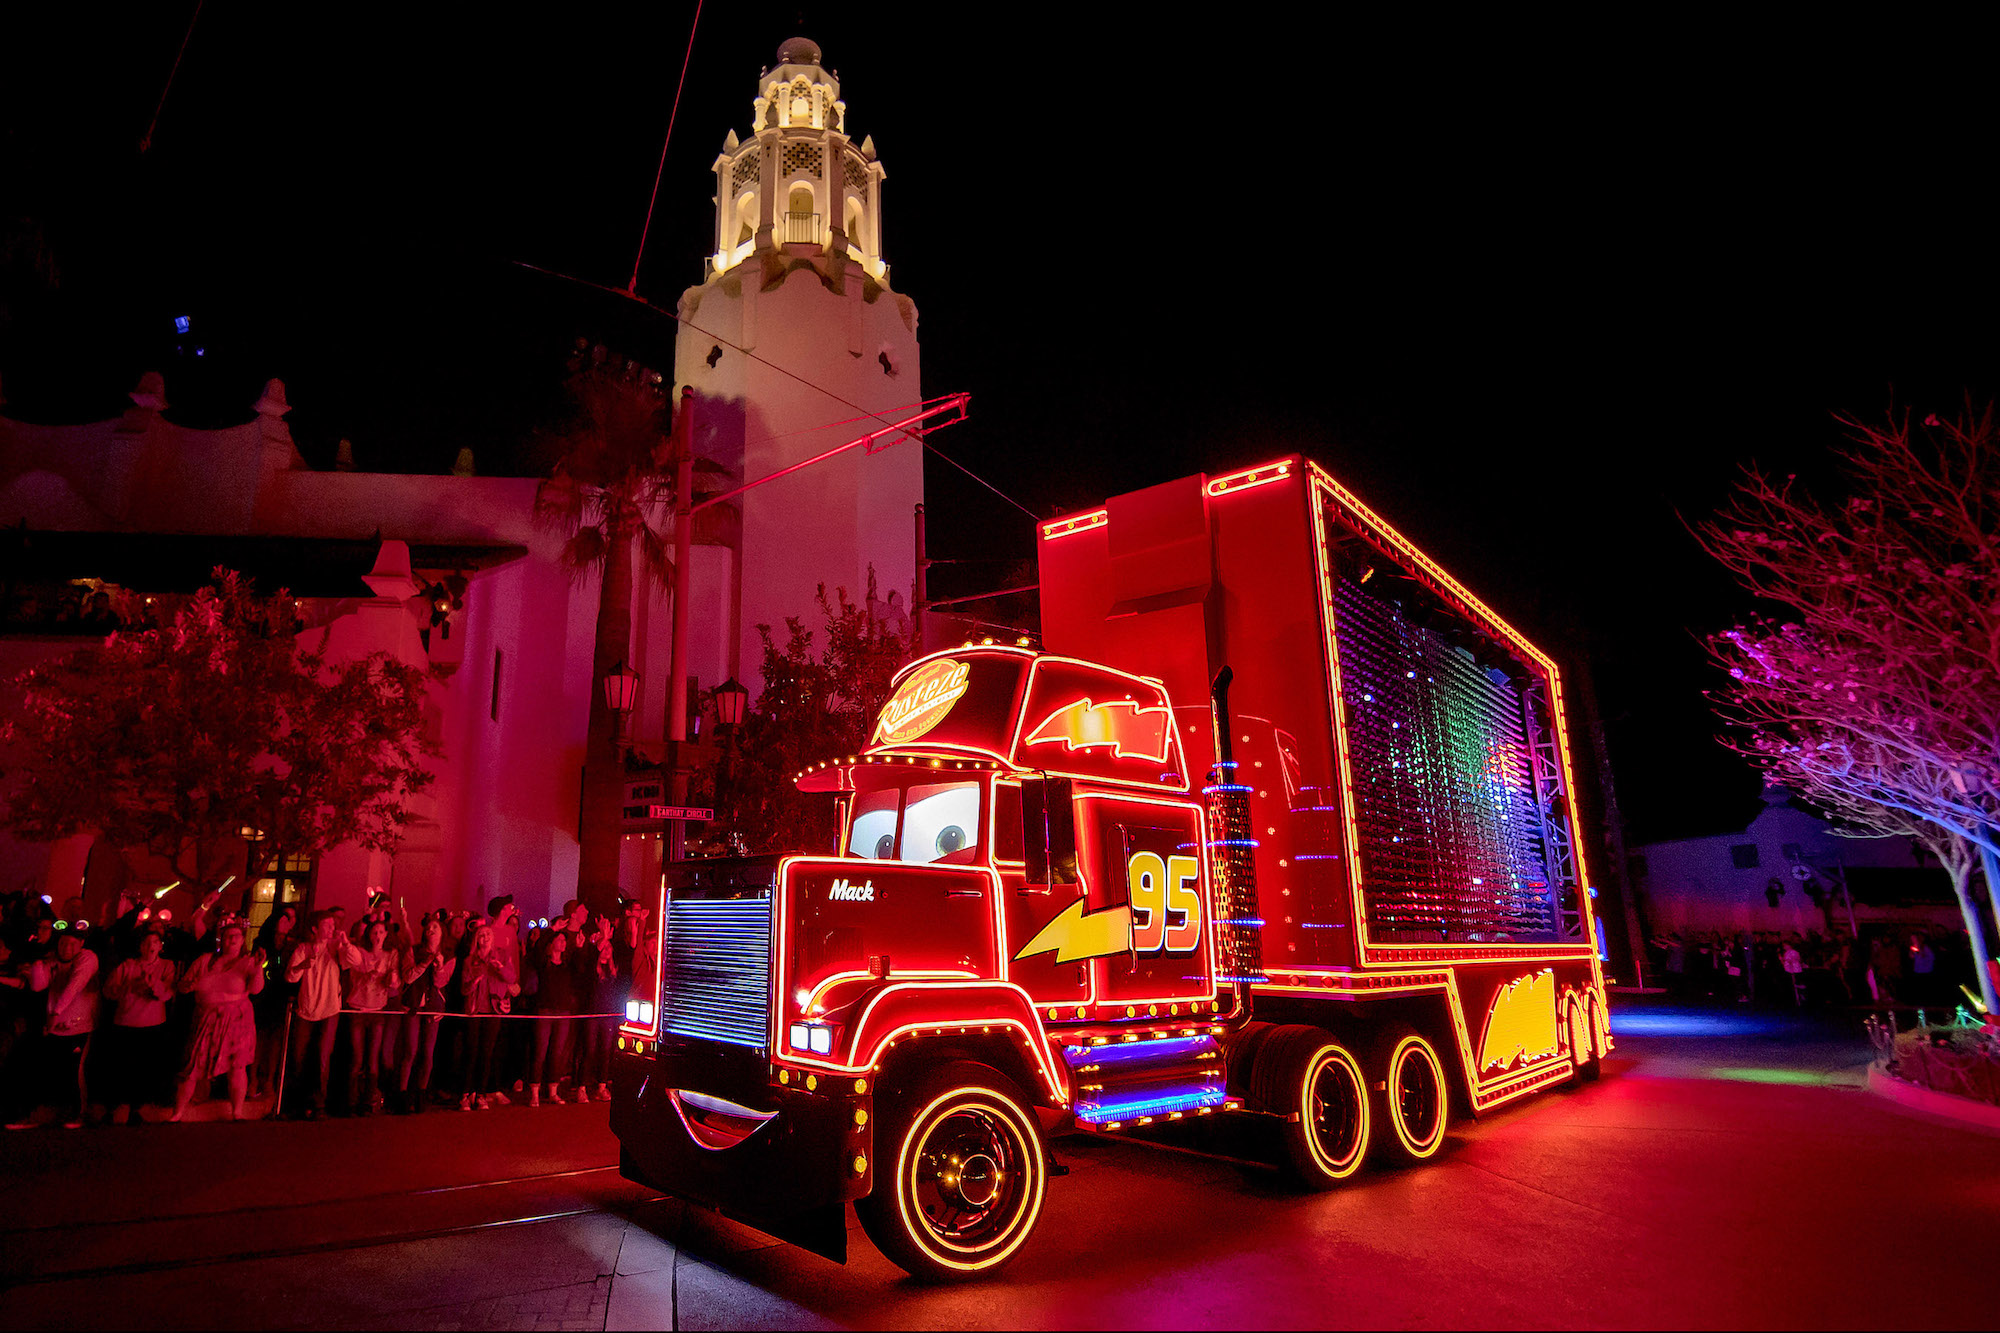 Disney Pixar Cars Mack in Paint the Night Parade